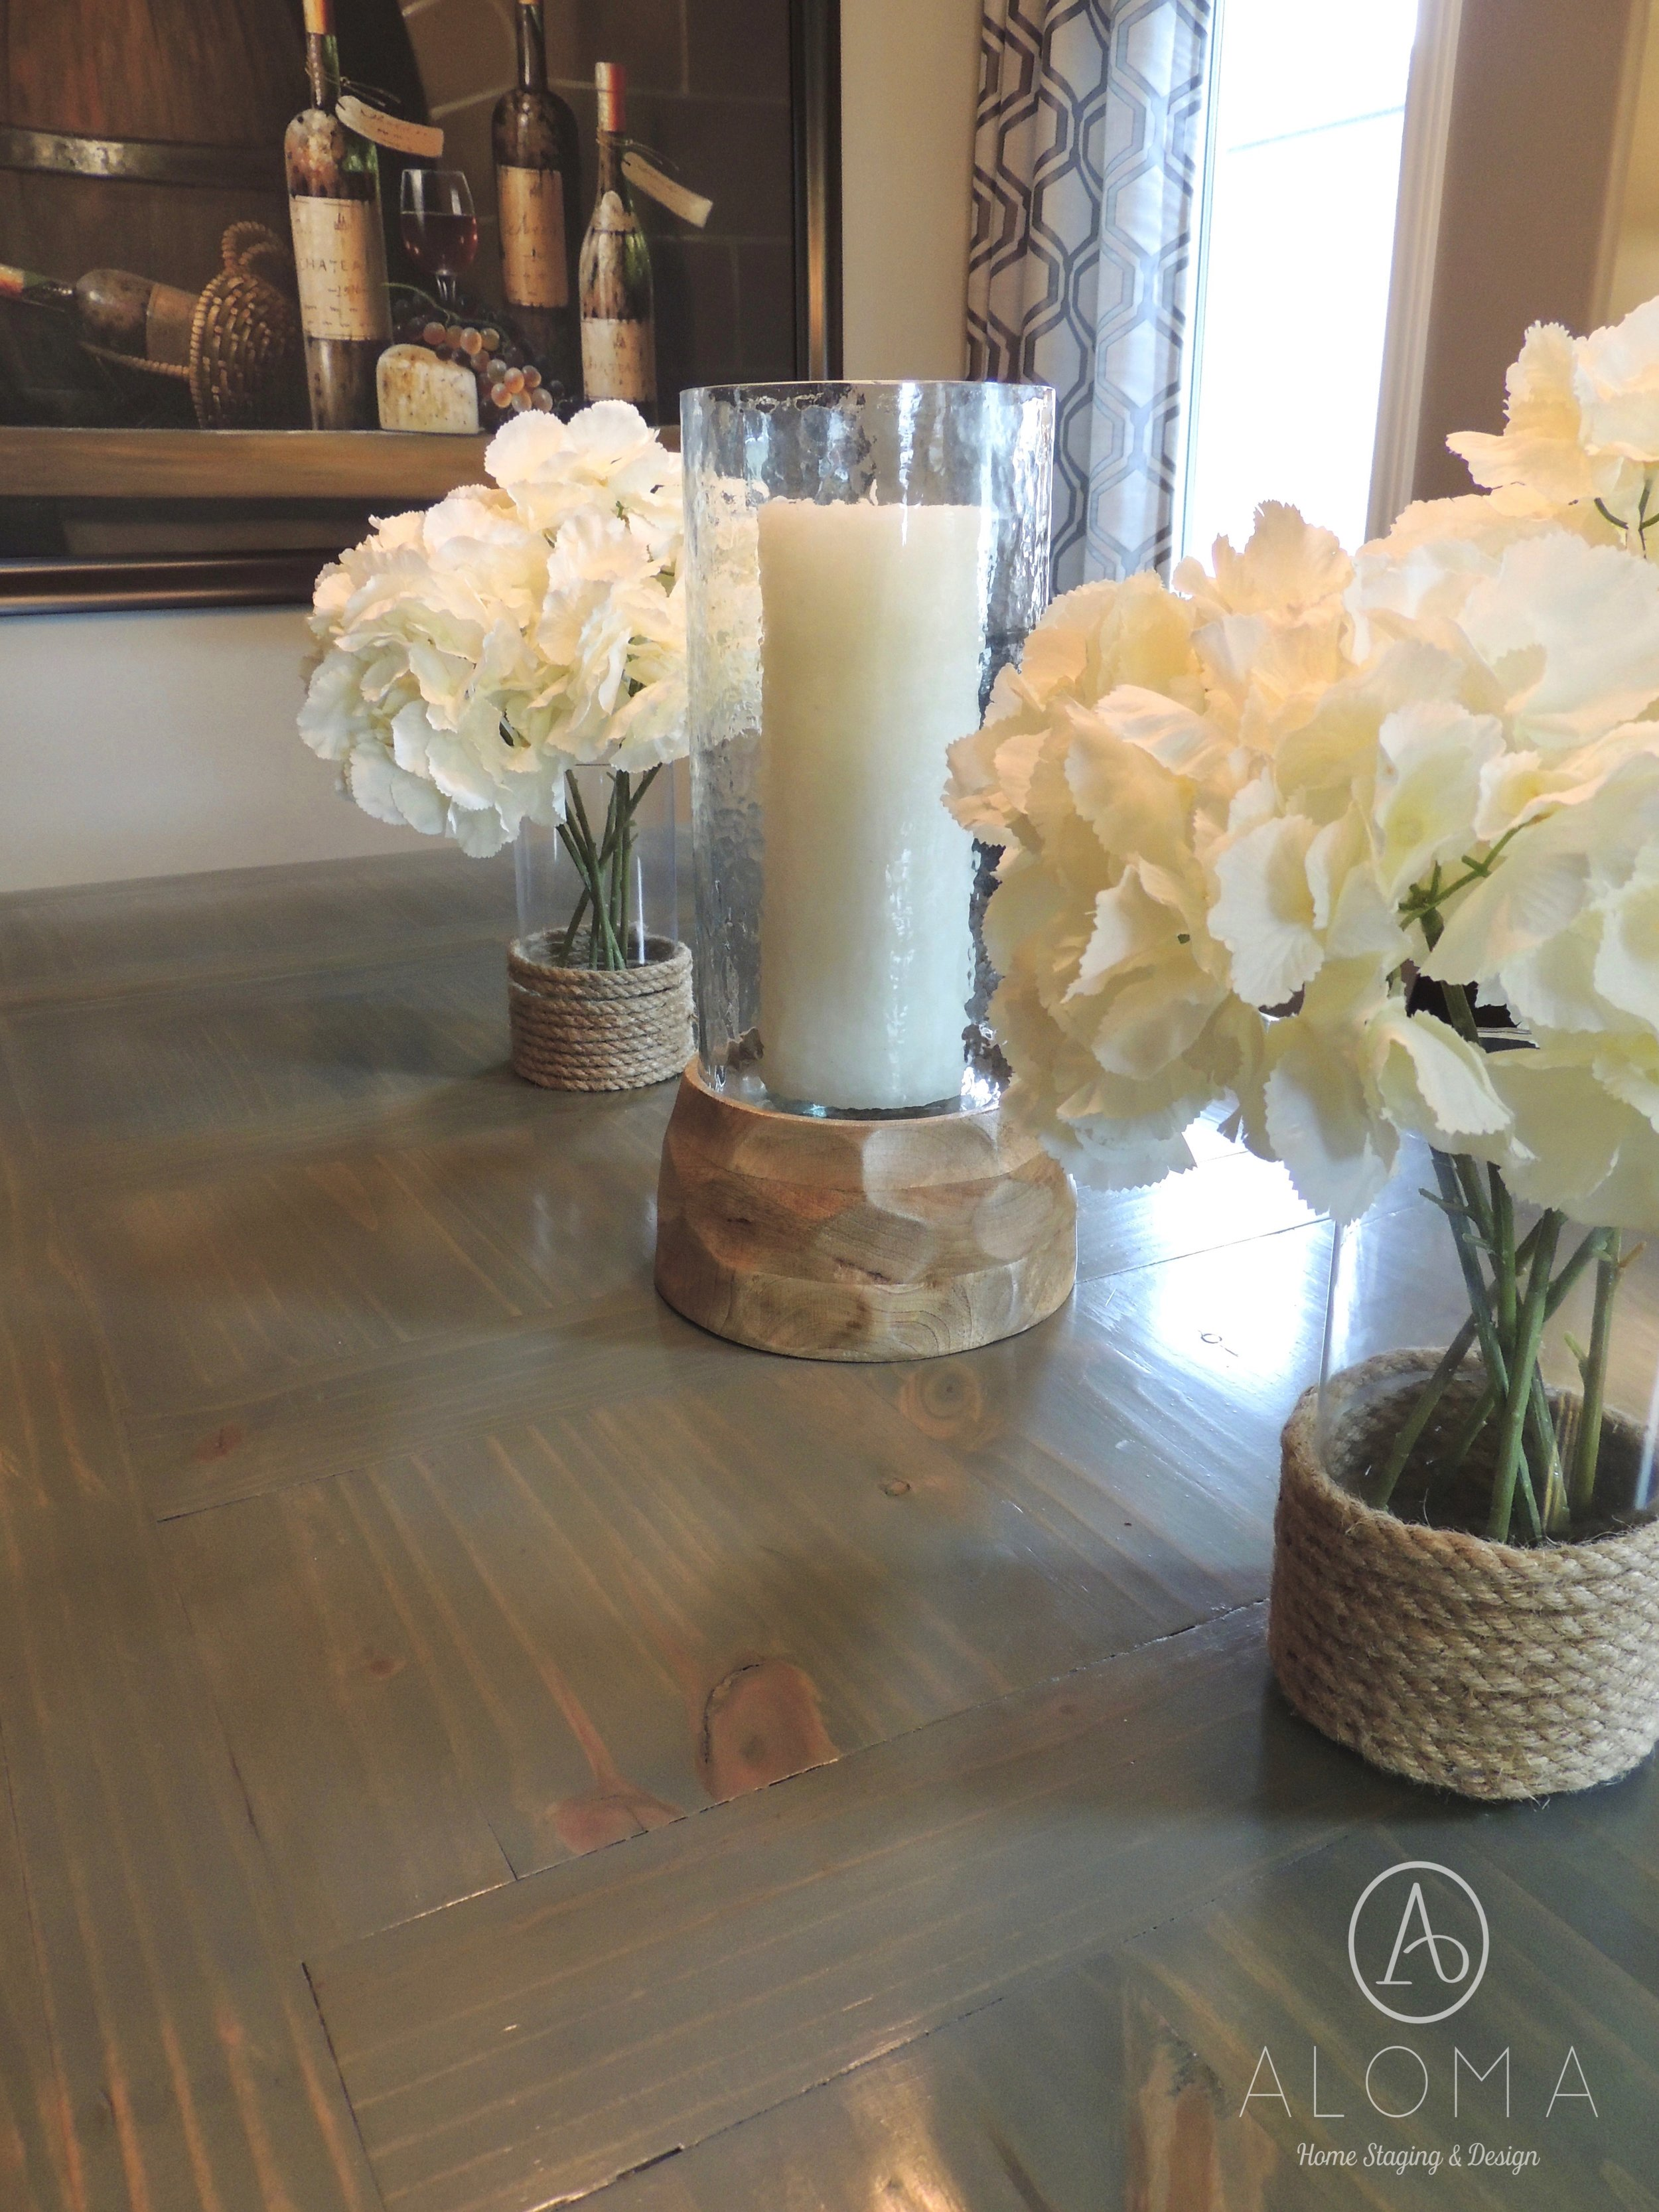 Rustic dining table centrepiece by ALOMA Home Staging & Design